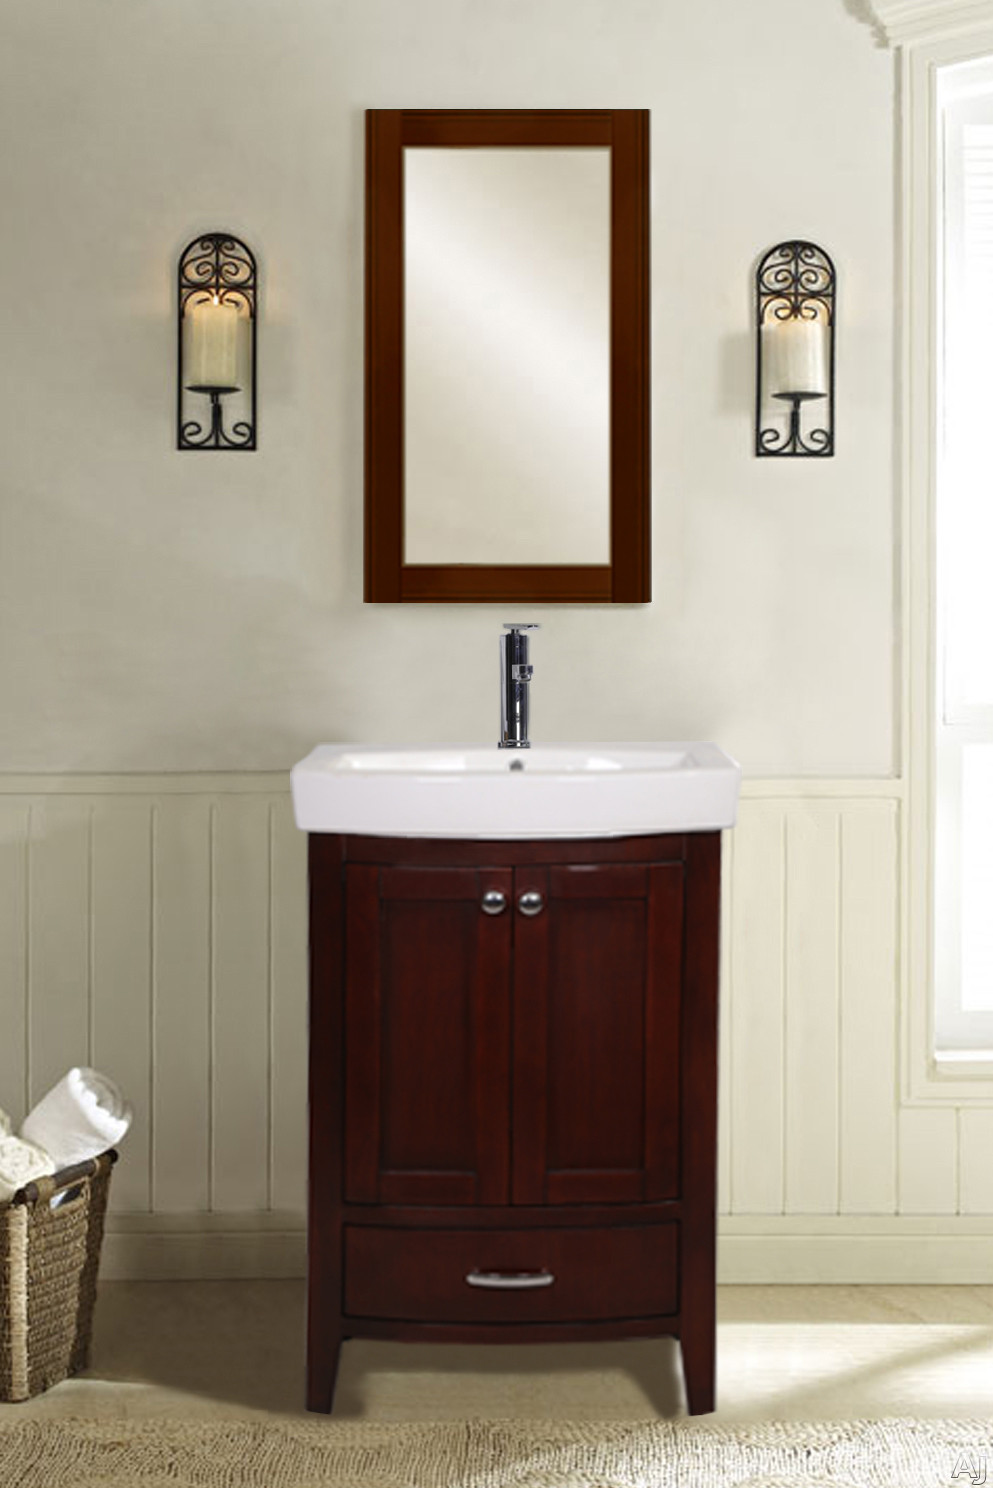 Empire Industries Arch Collection Amdc 22 Inch Arch Collection Mirror For Bathroom Sink And Vanity: Dark Cherry